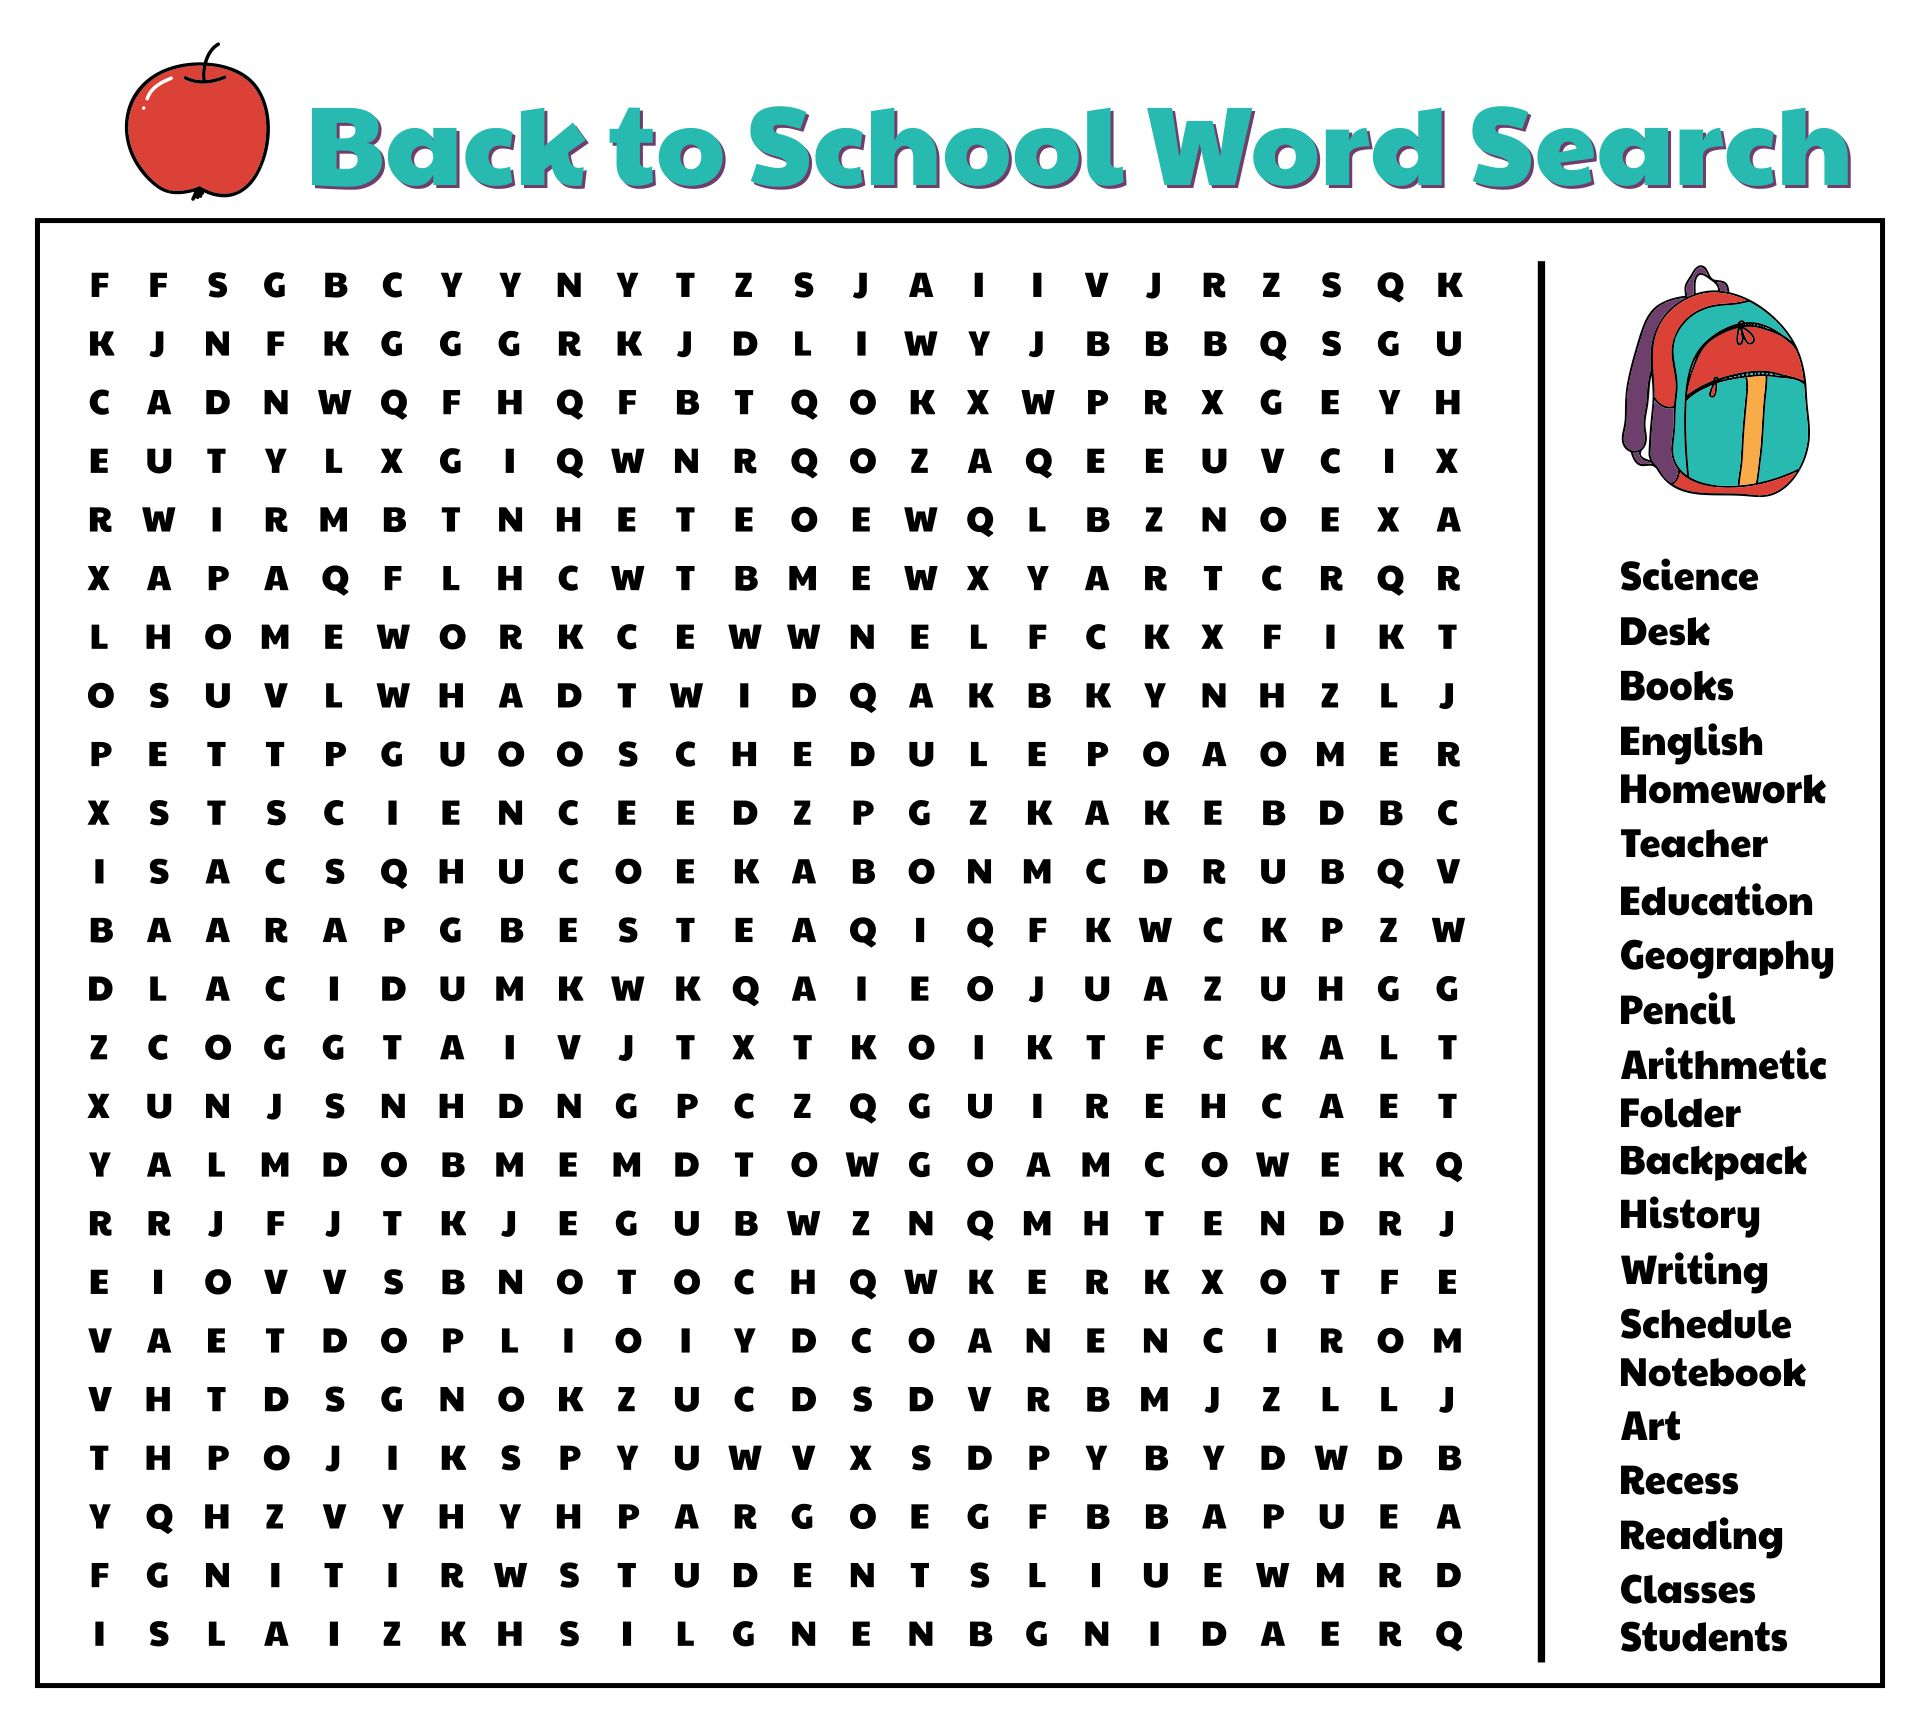 4 Images of School Word Search Puzzles Printable